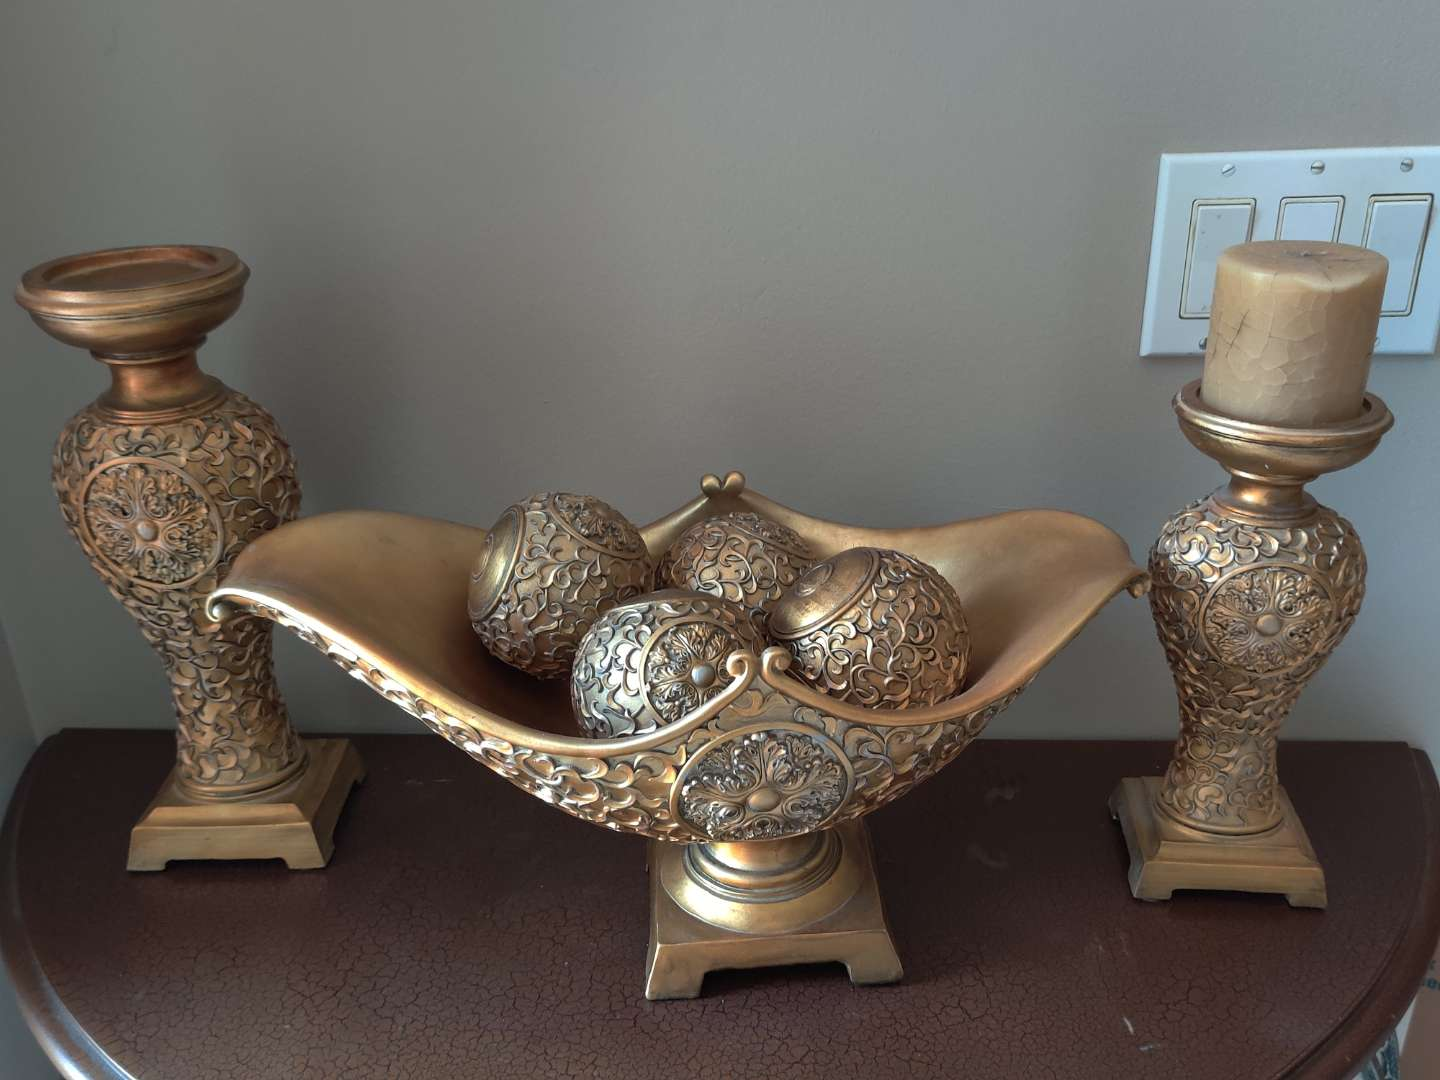 225 three piece composition console set candle holders and bowl